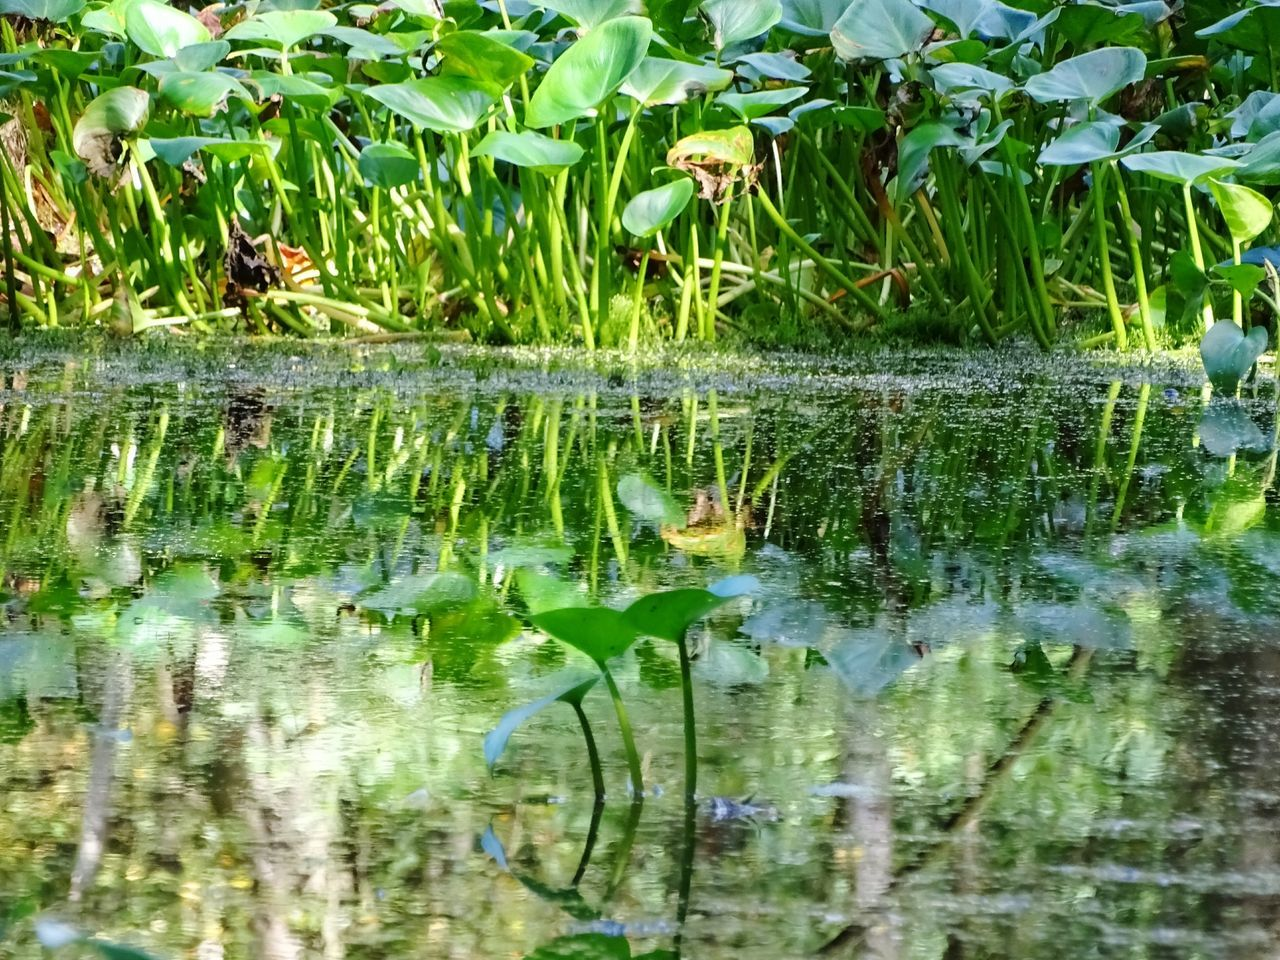 animals in the wild, reflection, animal themes, water, animal wildlife, one animal, green color, nature, day, no people, bird, outdoors, growth, lake, waterfront, leaf, plant, beauty in nature, grass, mammal